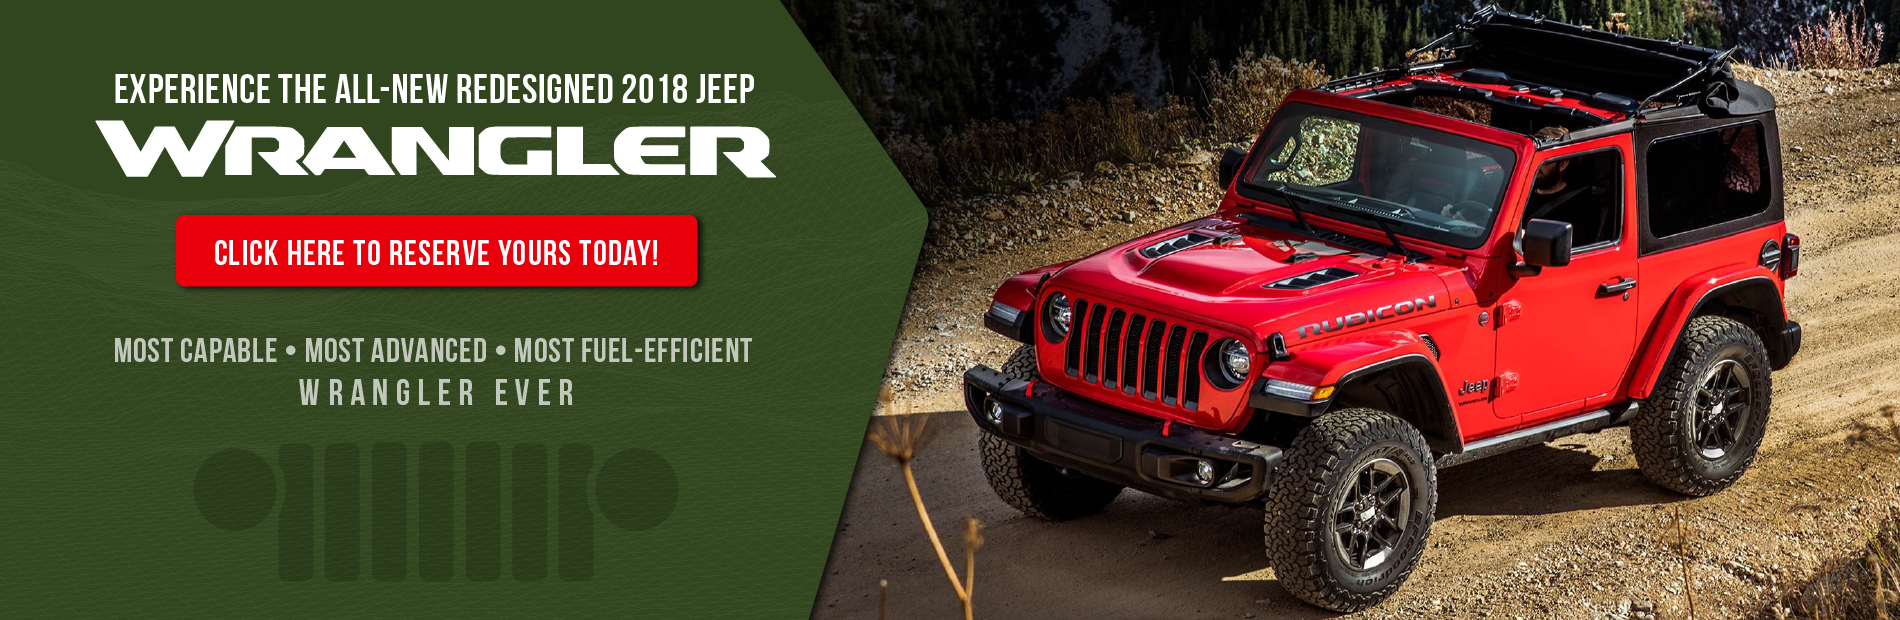 All New Redesigned 2018 Jeep Wrangler Royal Gate